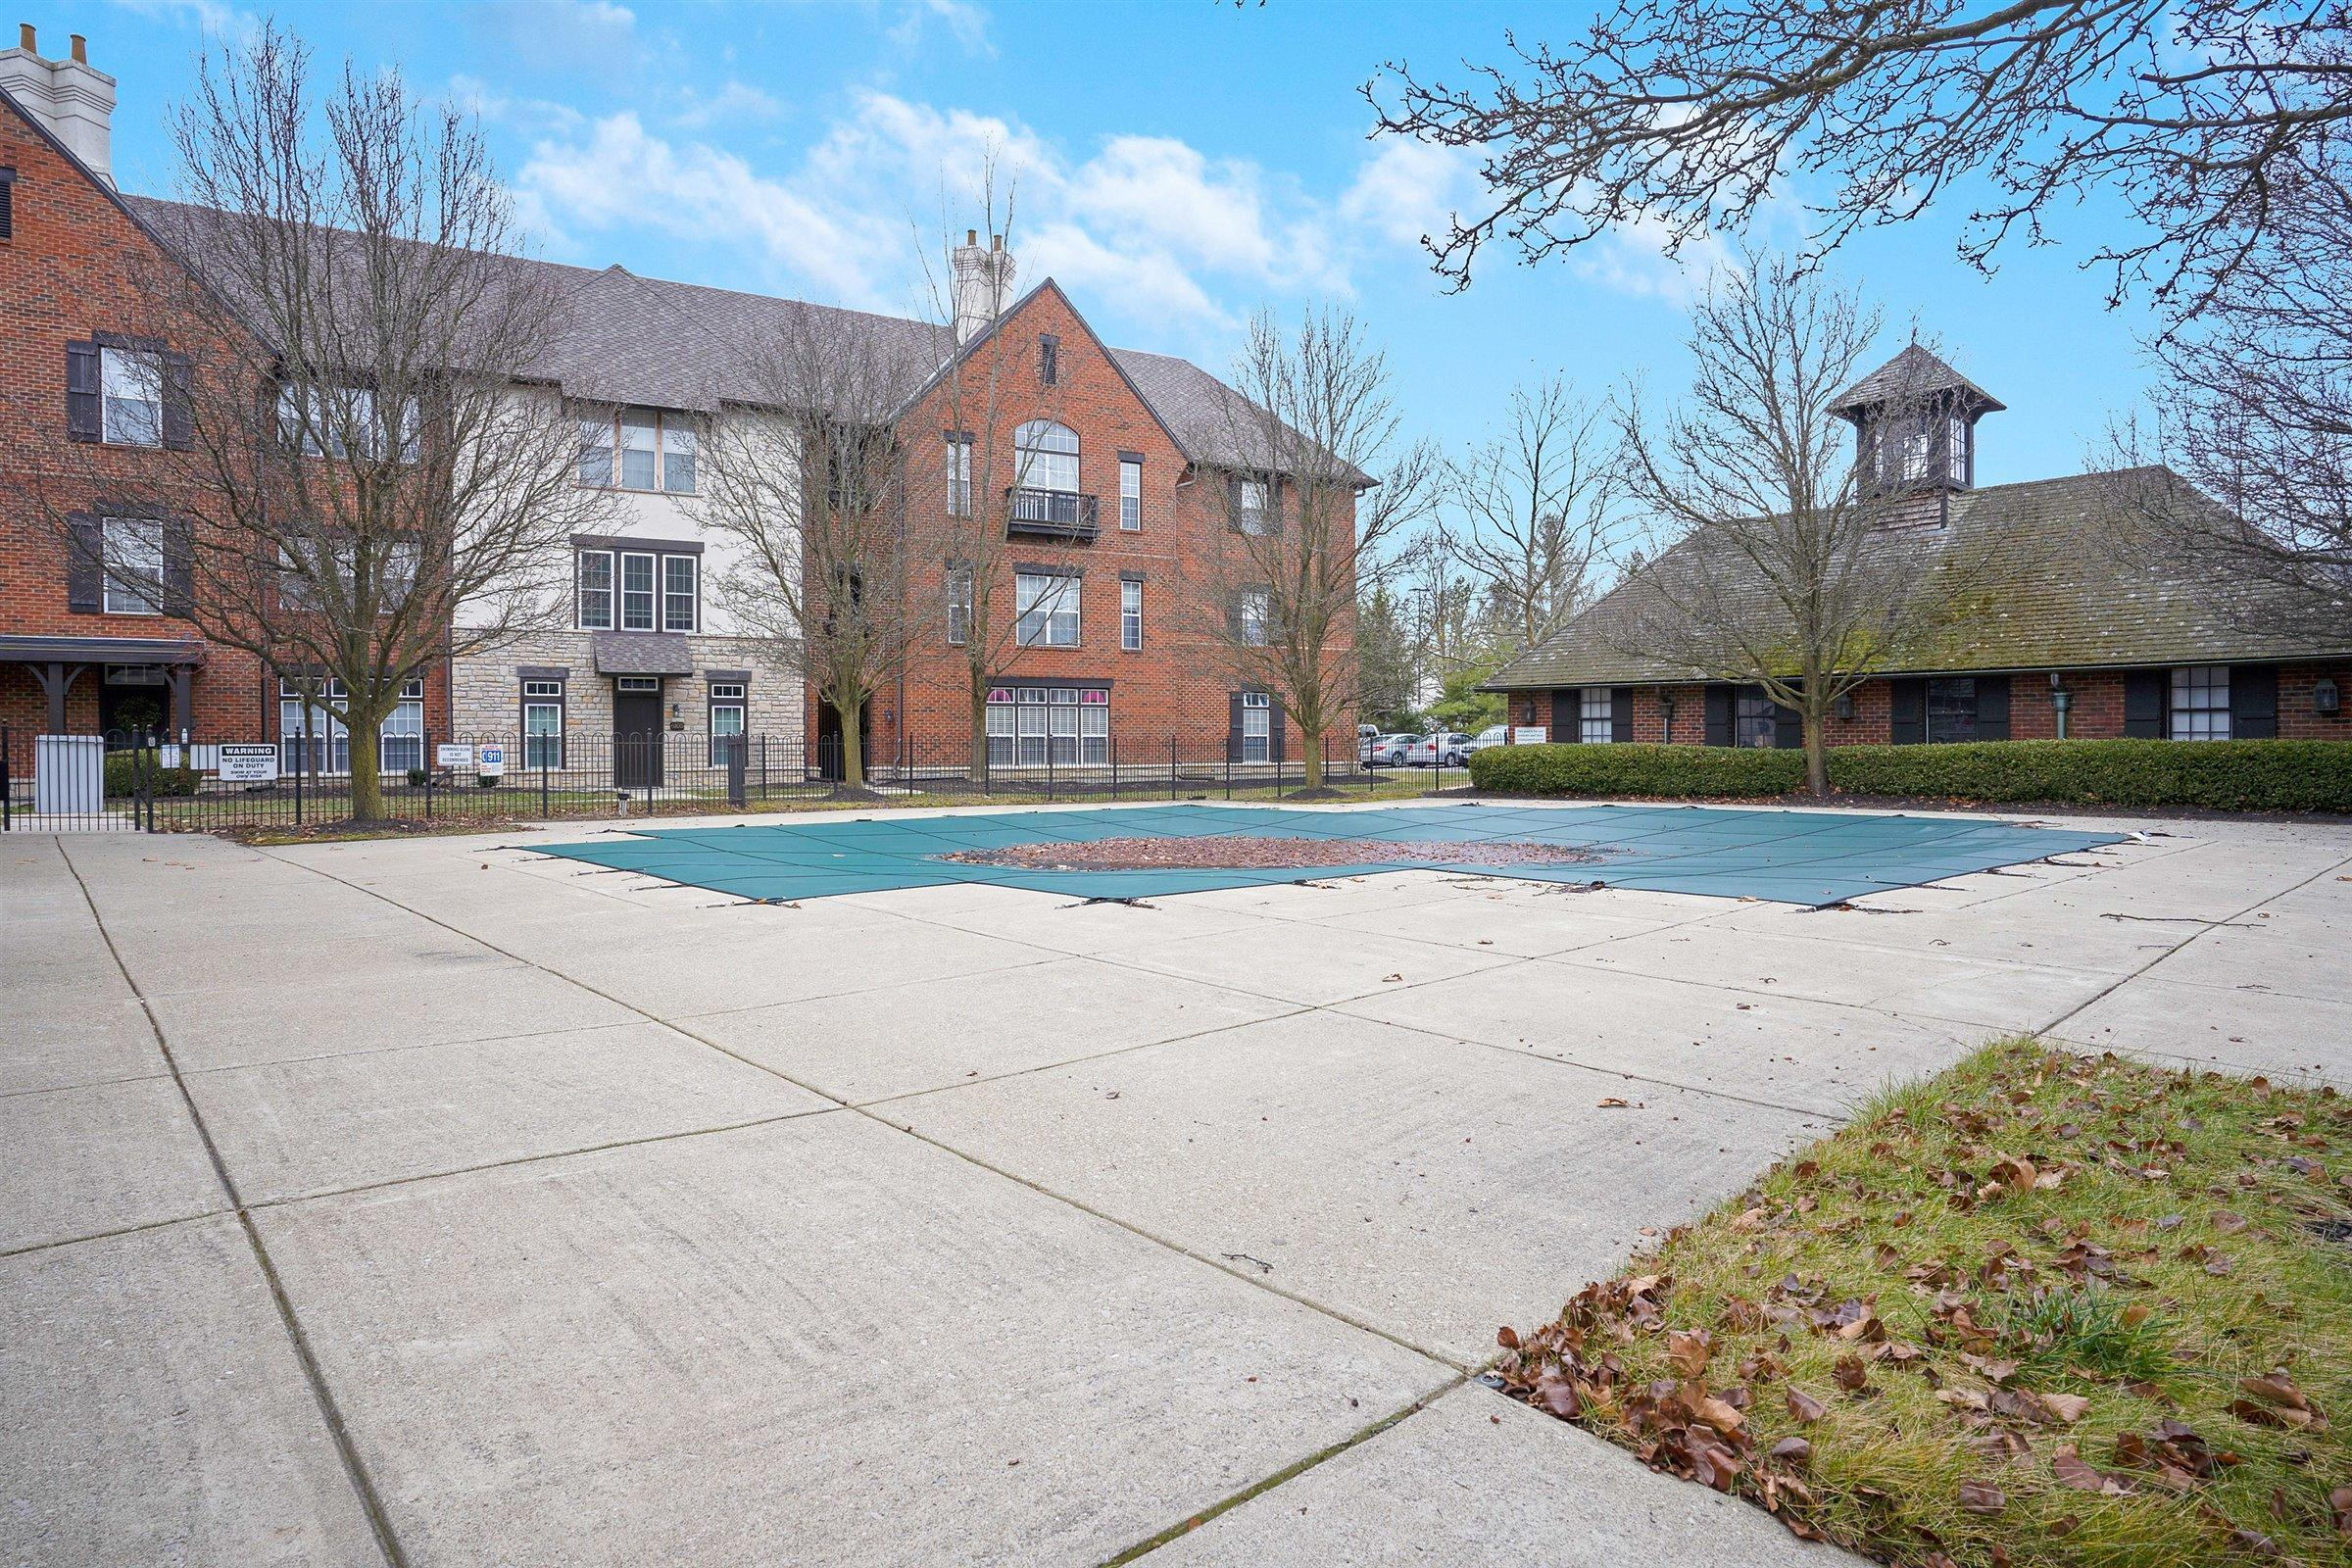 6253 Craughwell Lane, Dublin, Ohio 43017, 2 Bedrooms Bedrooms, ,2 BathroomsBathrooms,Residential,For Sale,Craughwell,221000998